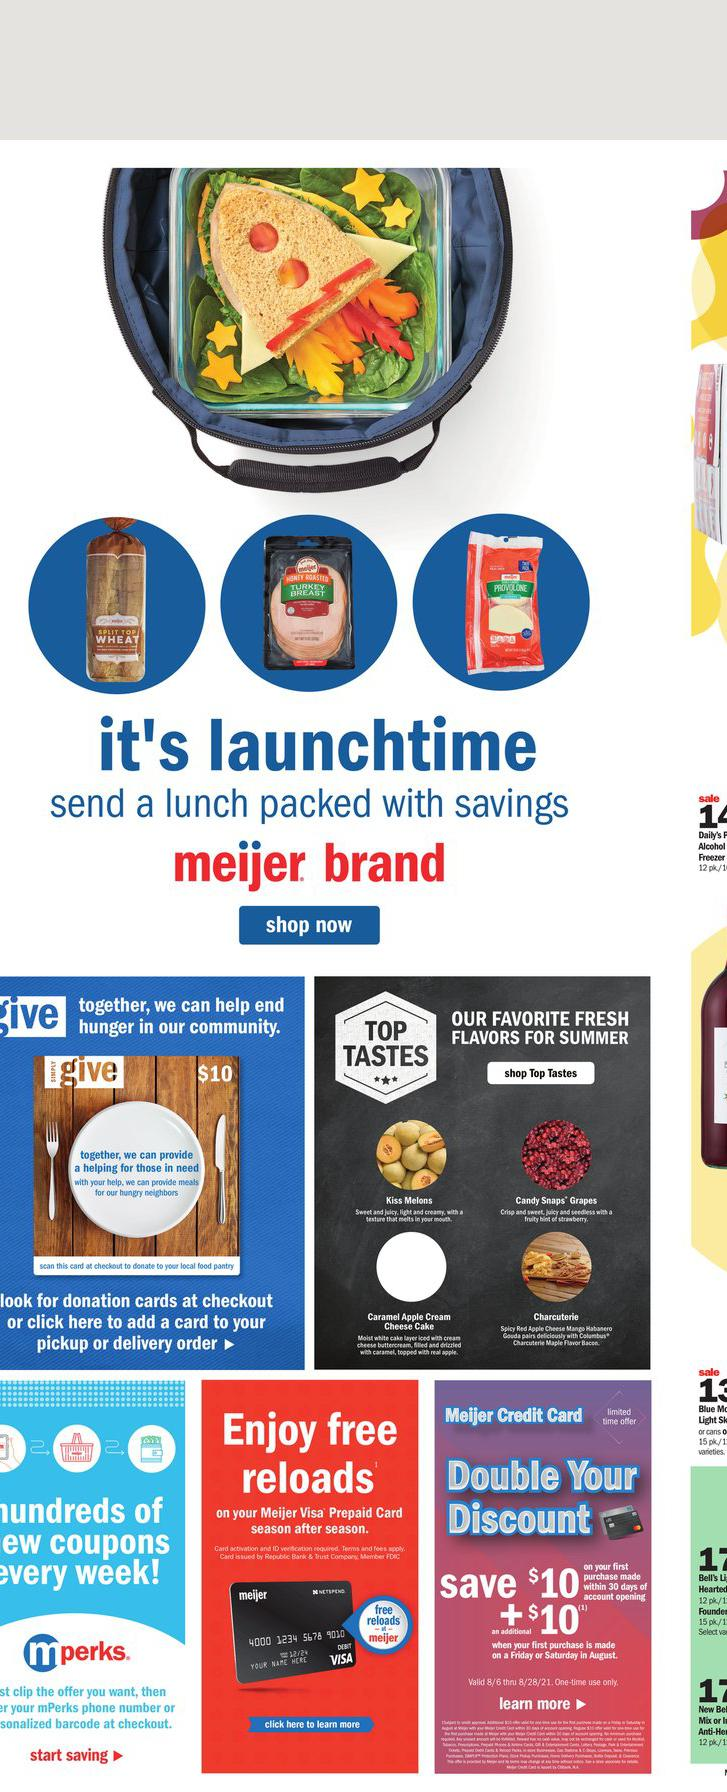 01.08.2021 Meijer ad 11. page